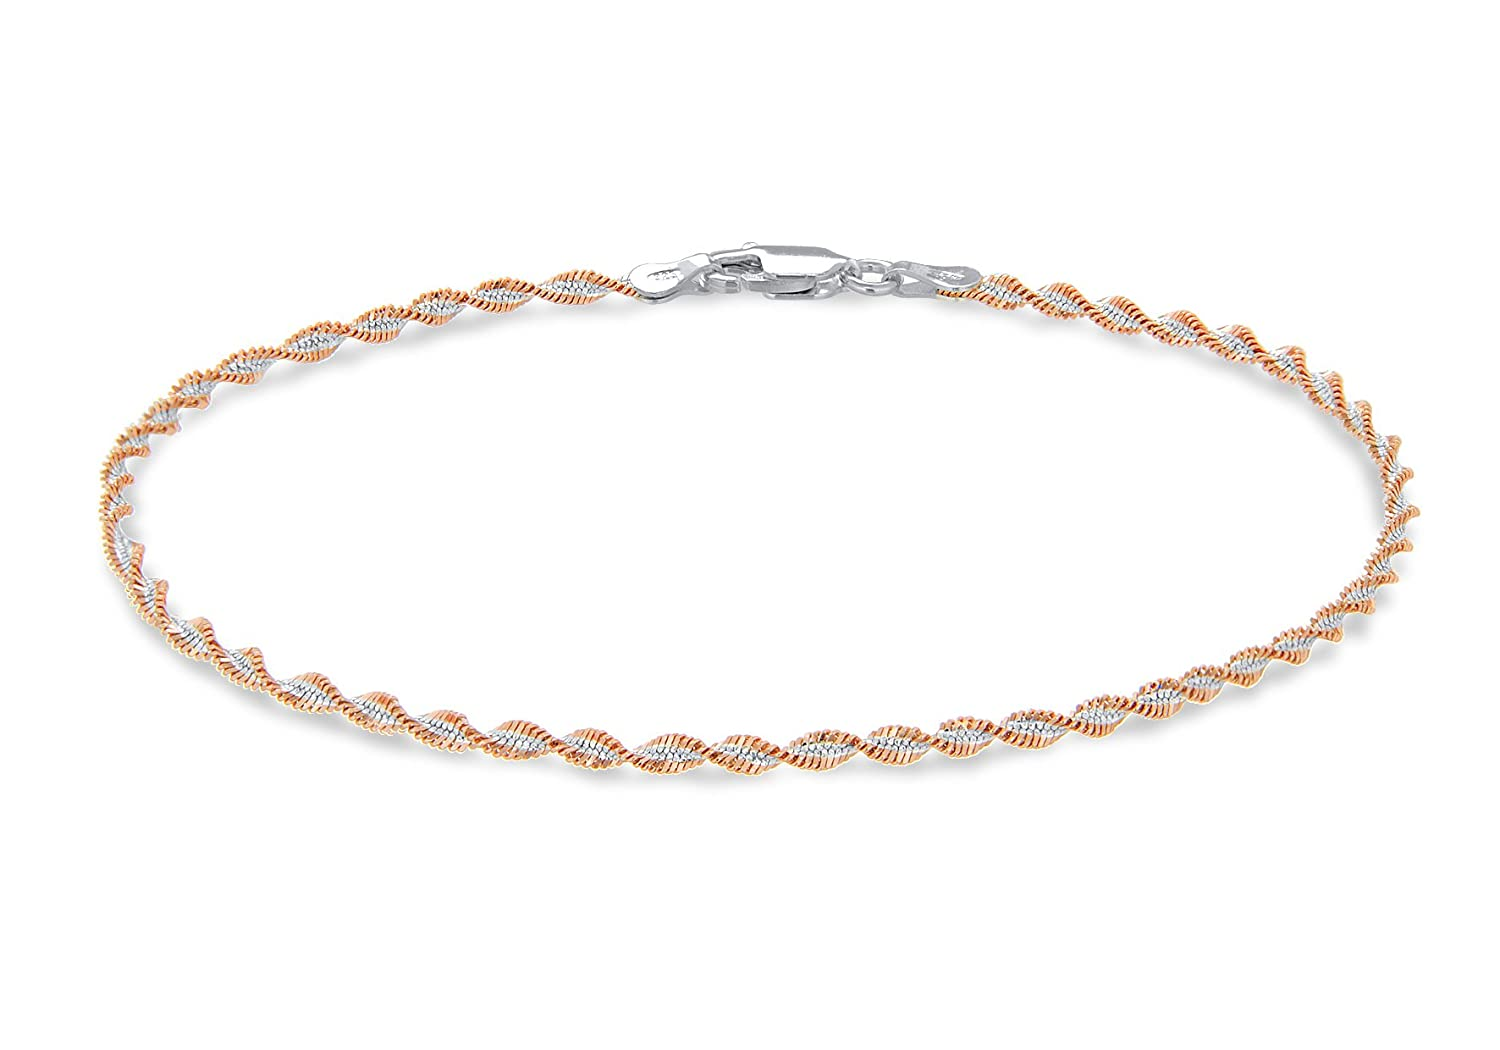 Tuscany Silver Sterling Silver 2 Tone Twist Detail Bracelet of 19cm/7.5